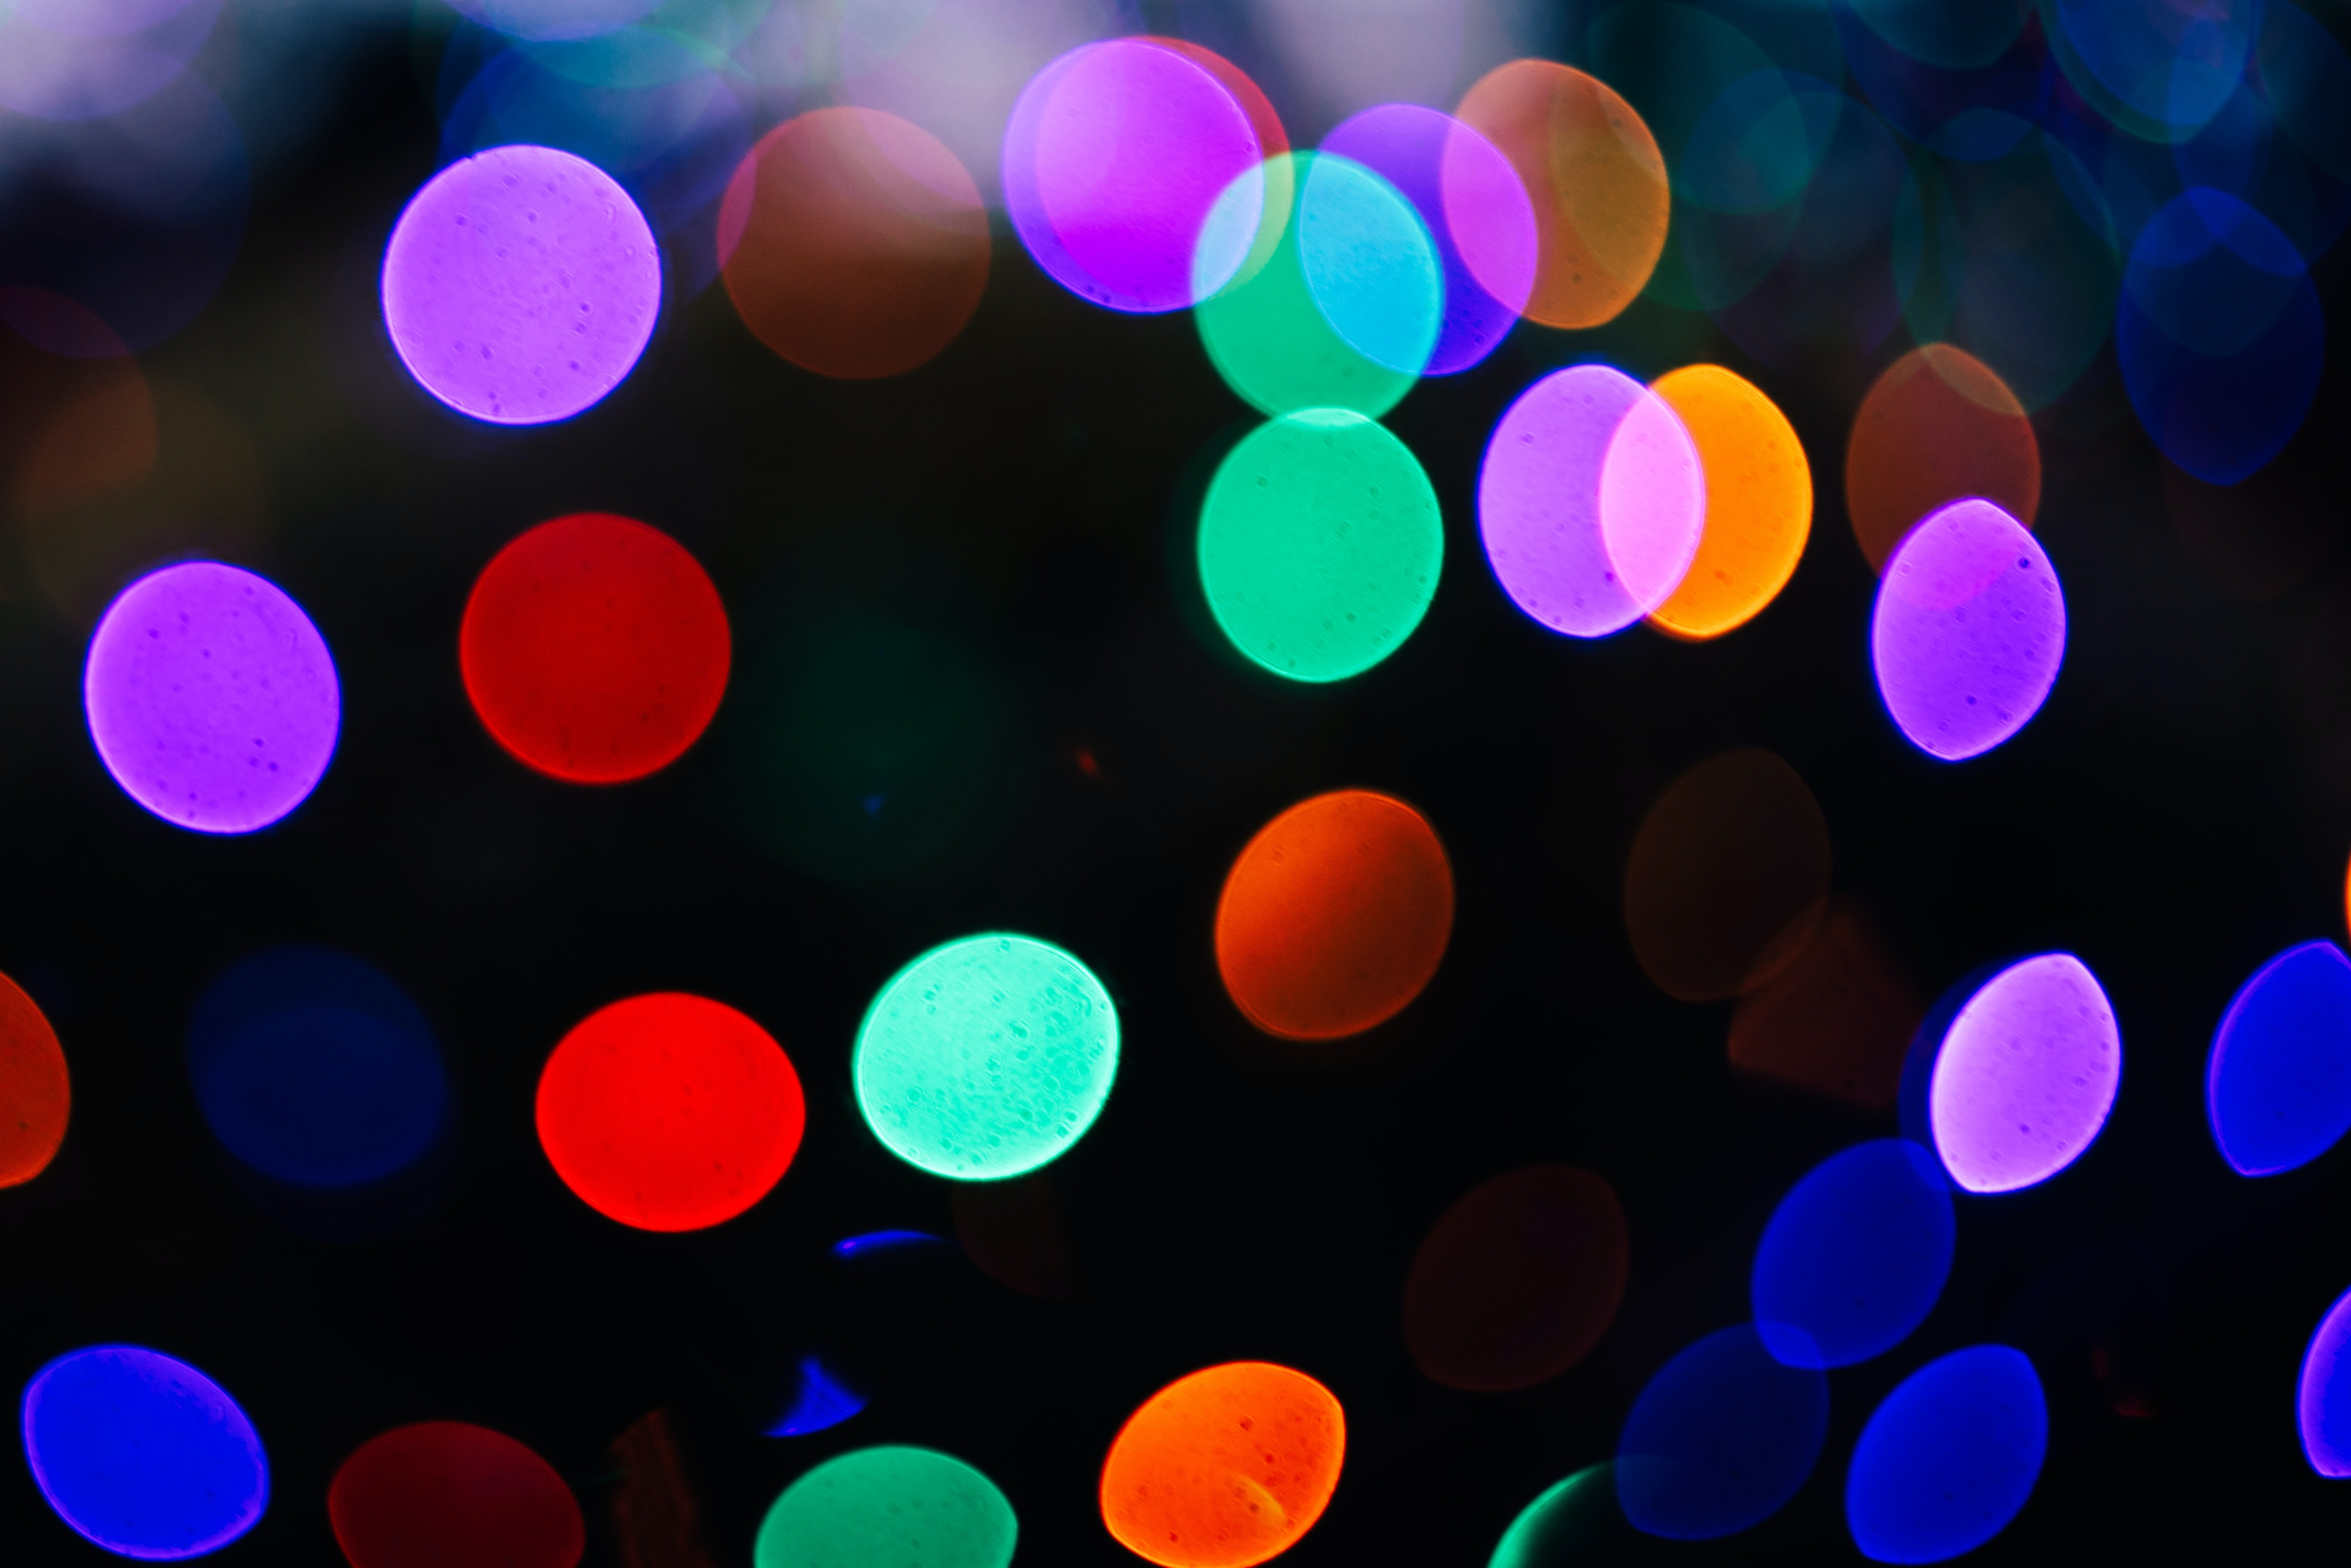 shallow focus photography of multicolored lights